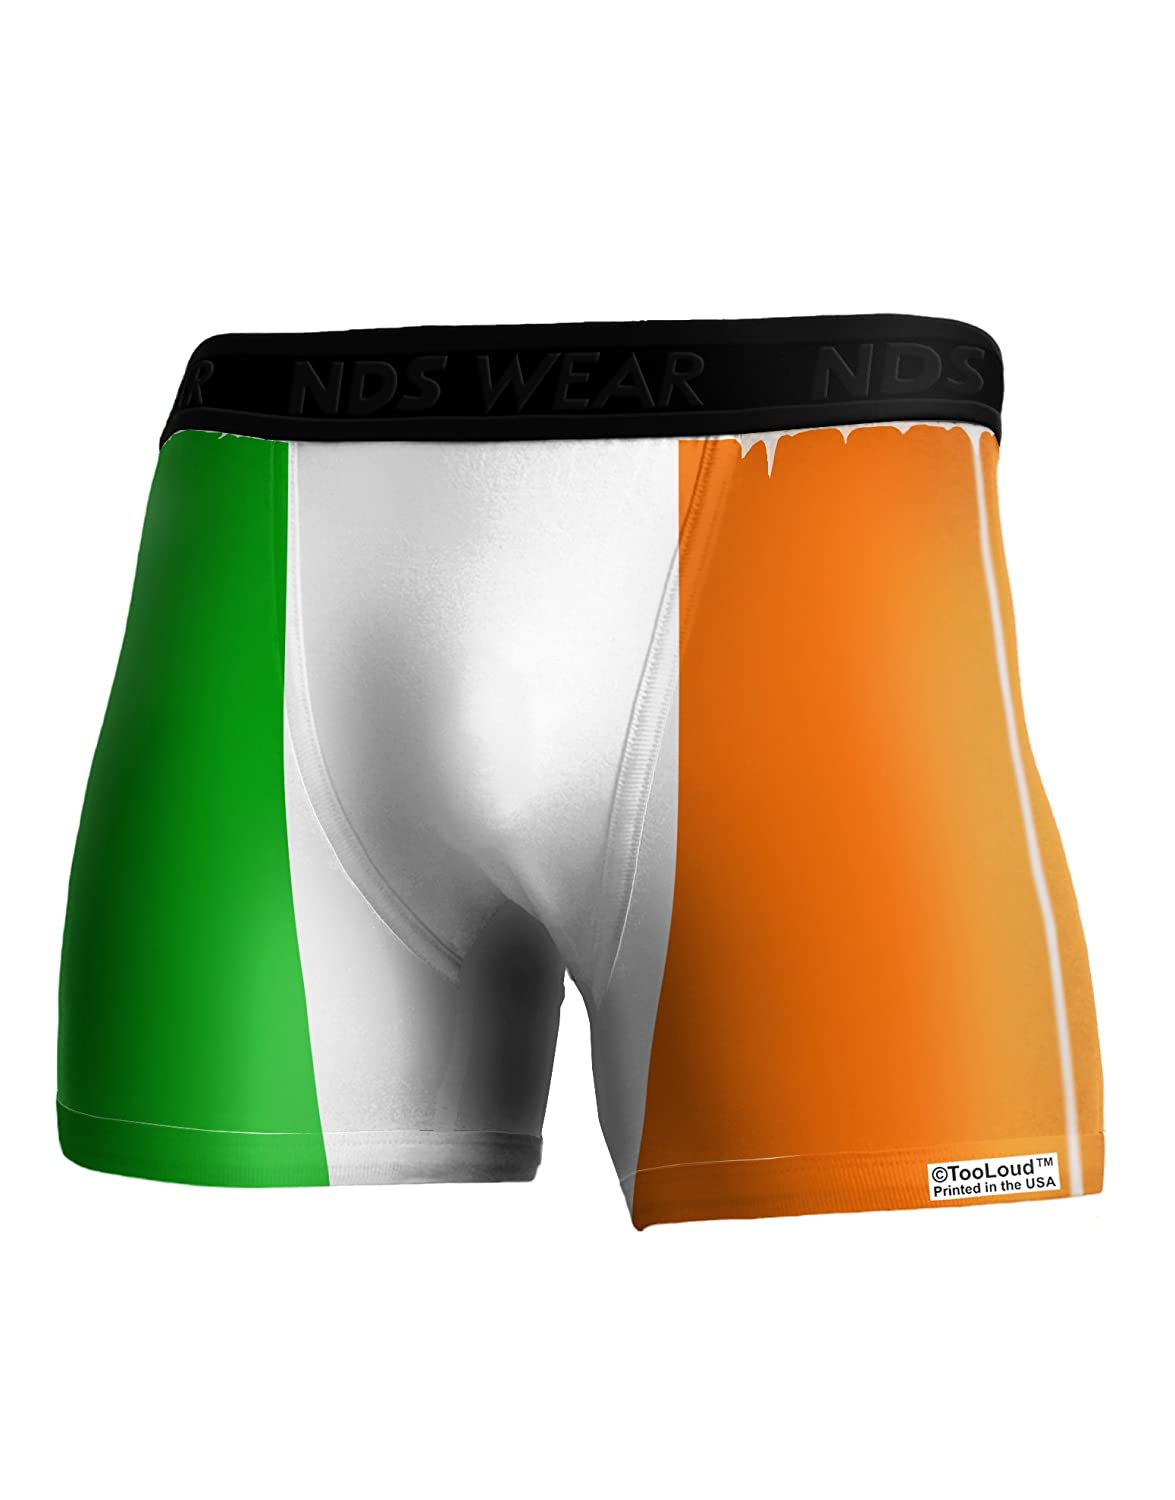 NDS Wear TooLoud Black Irish Mens Briefs Underwear